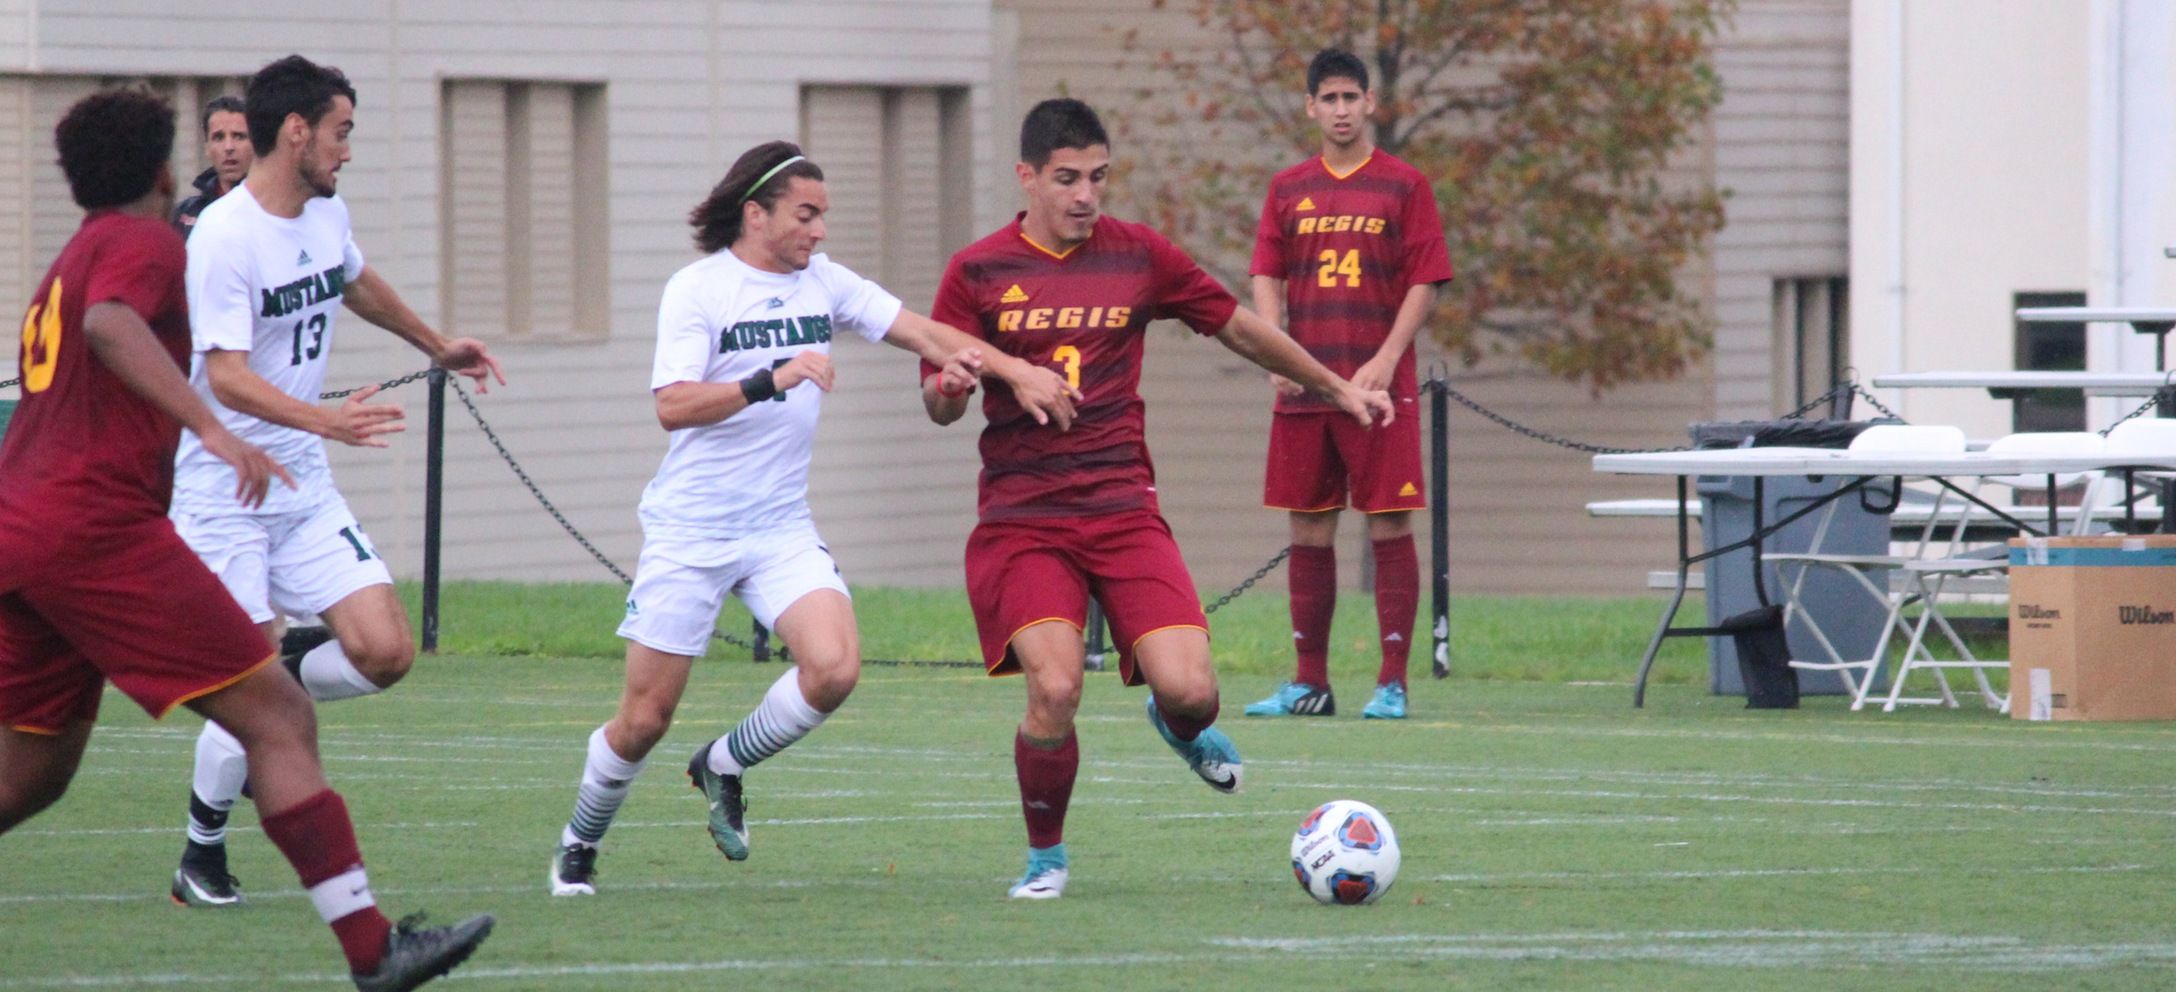 Men's Soccer Faces Tall Order at Saint Joseph's In GNAC Semifinal